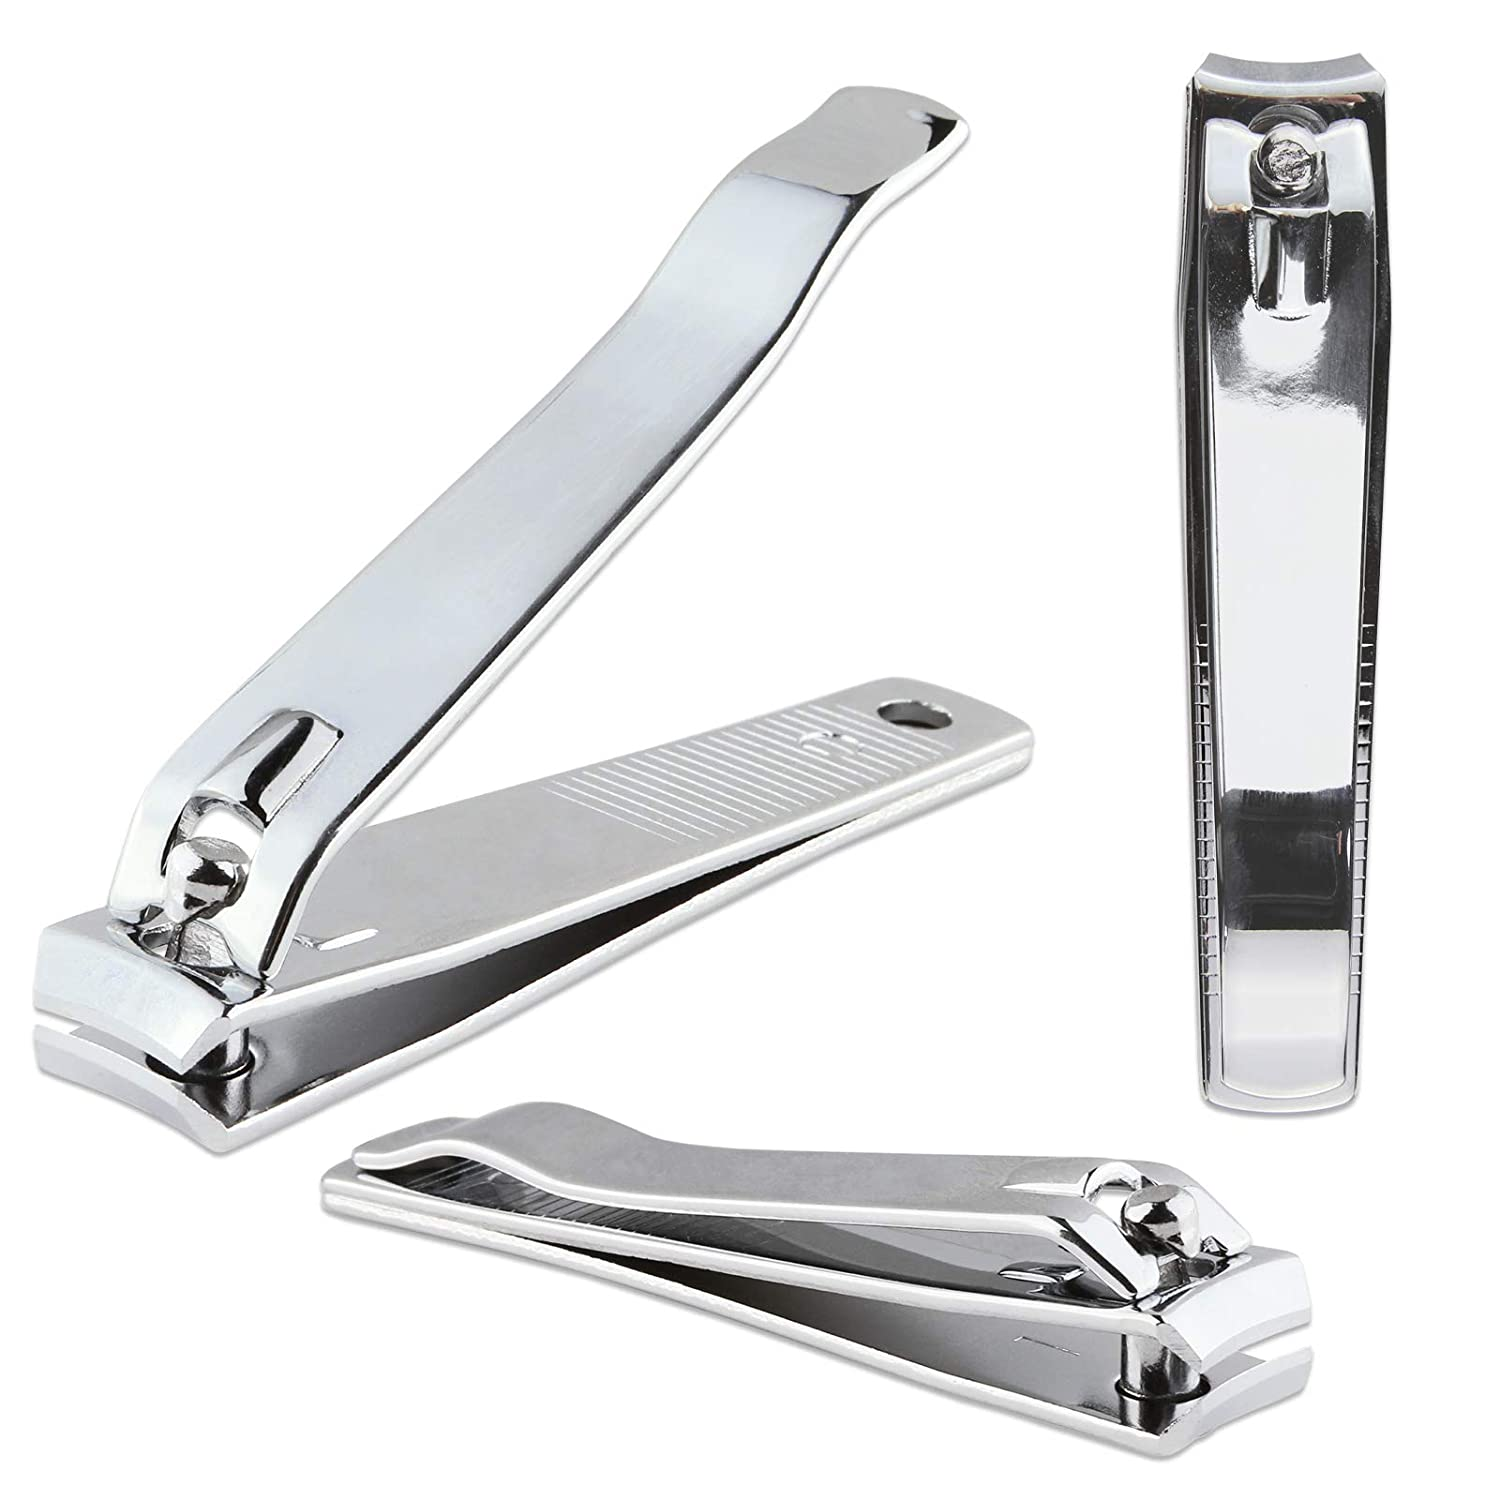 Beauticom Professional Sharp Stainless Silver Steel Finger Nail & Toe Nail Clippers for Acrylic Nails (3 Pieces, Curved)